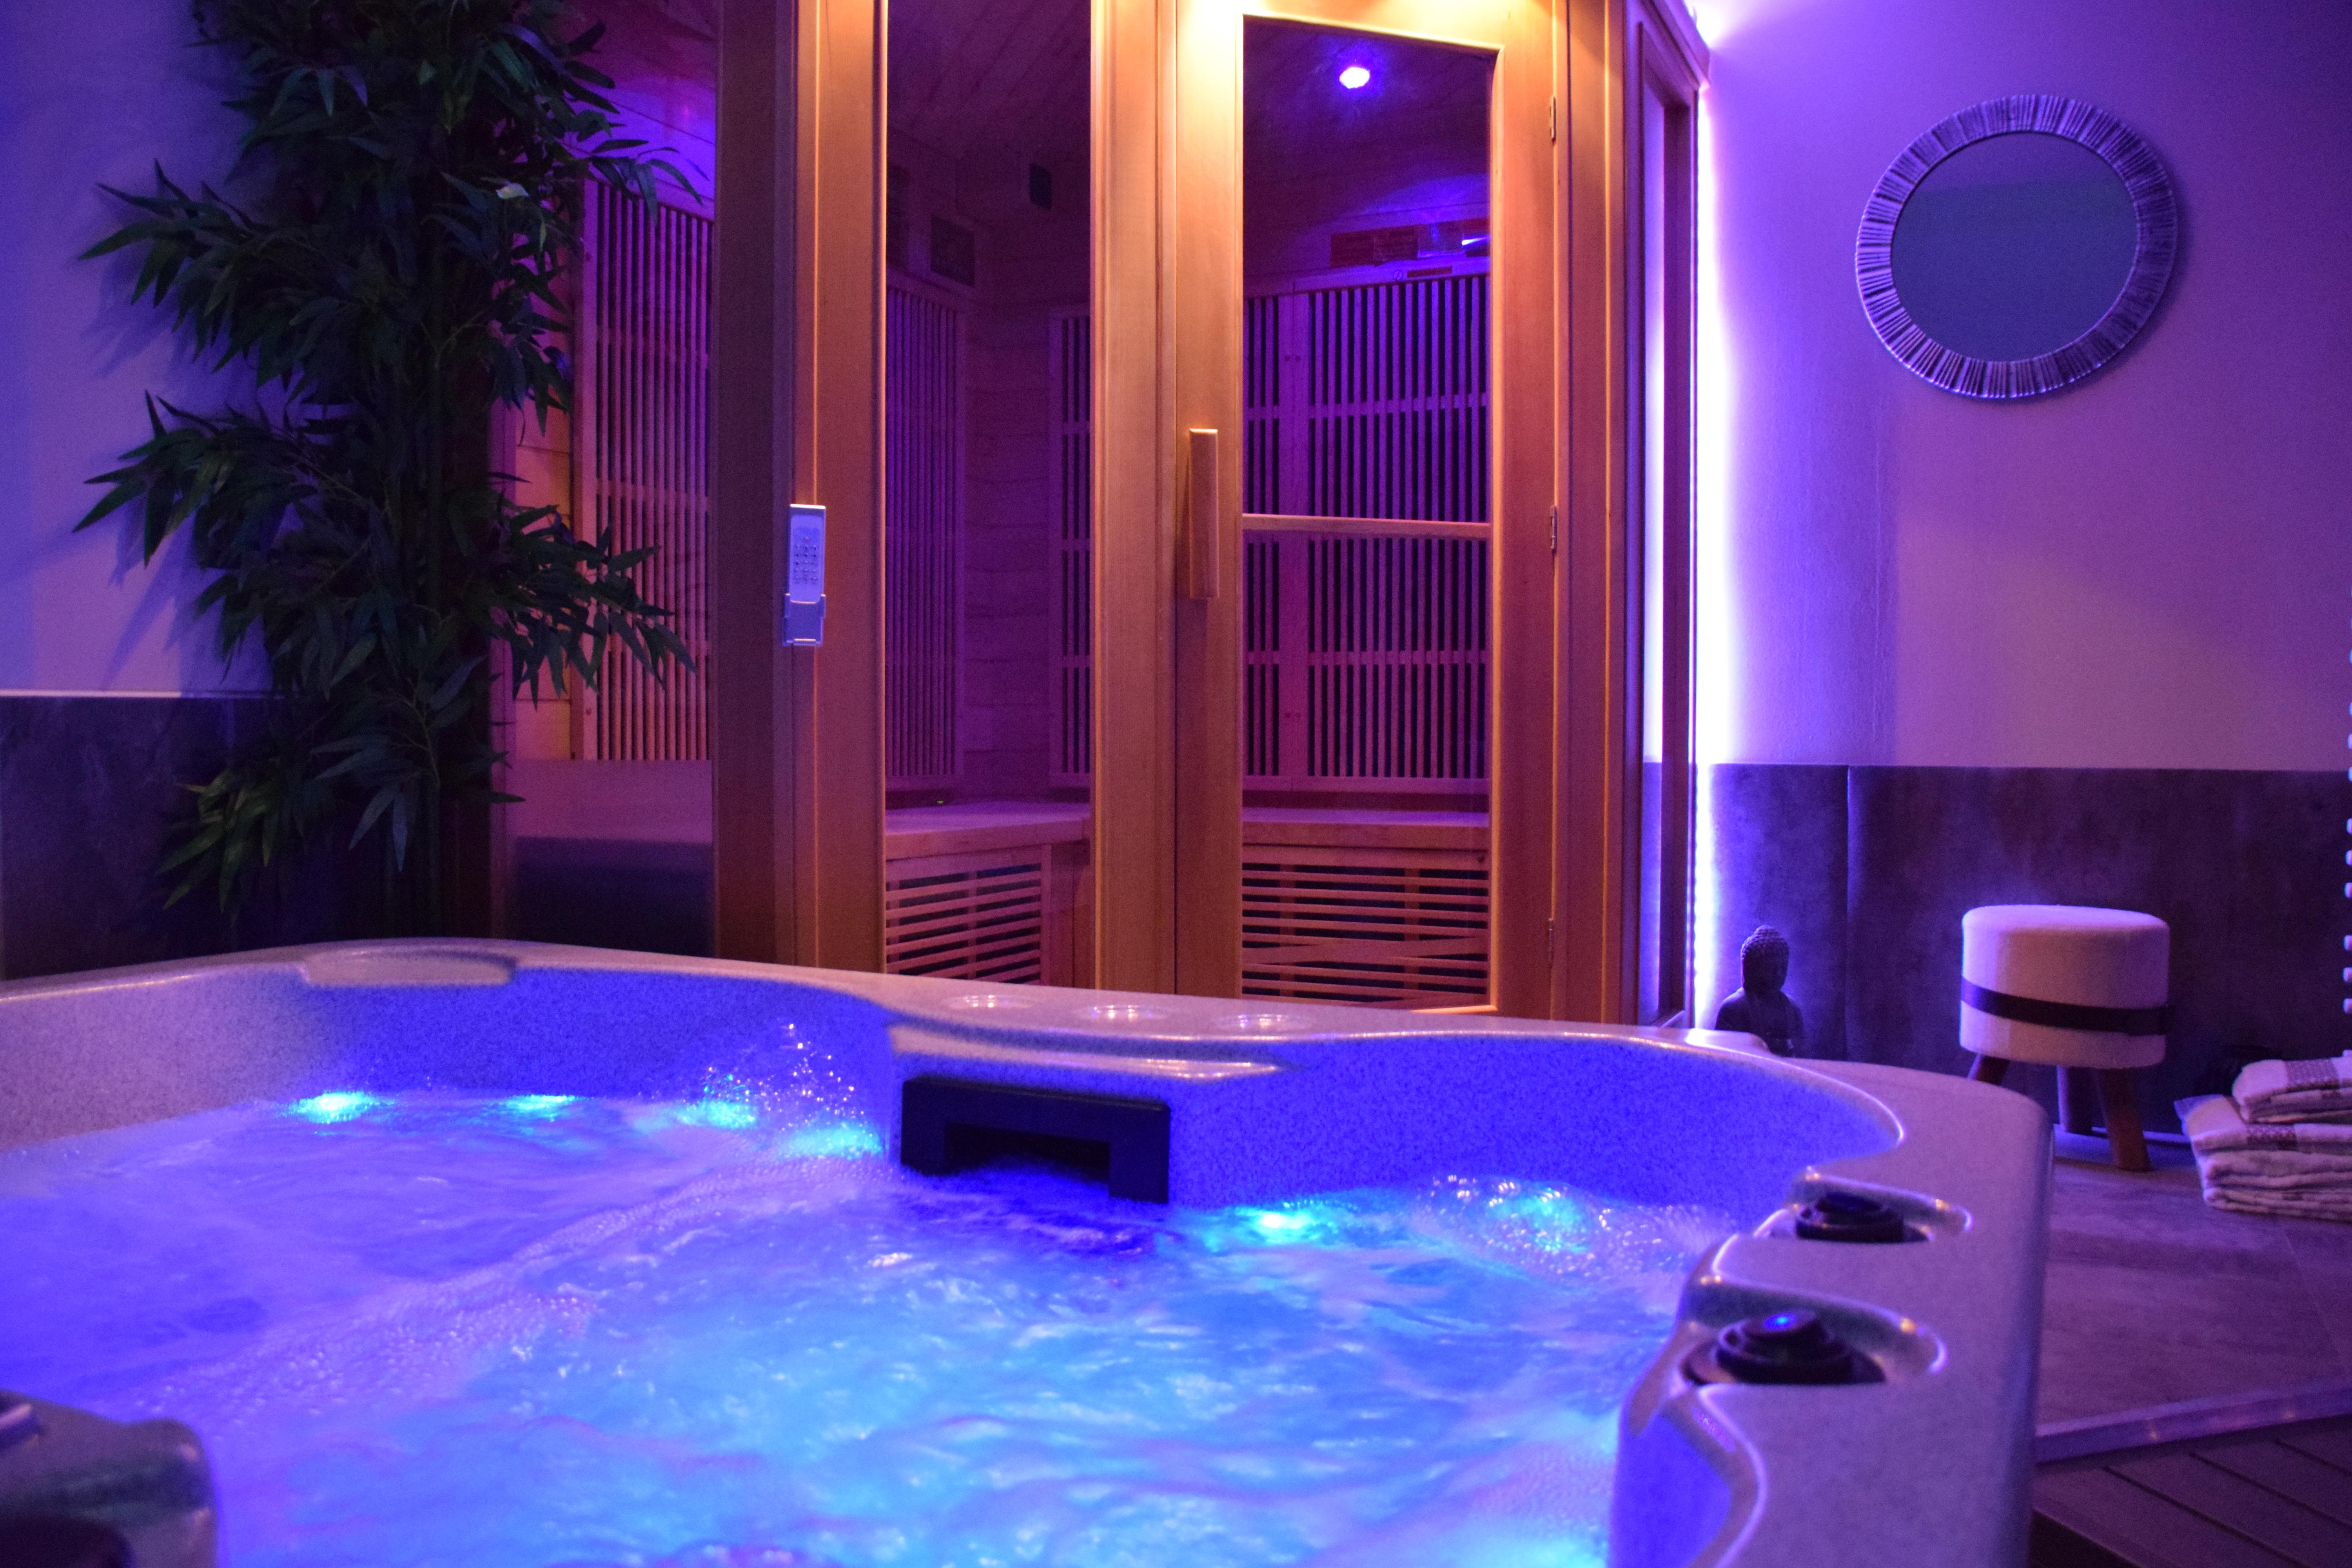 Private jacuzzi and sauna of the bubble Ecolodge en-suite ideal for relaxing in love